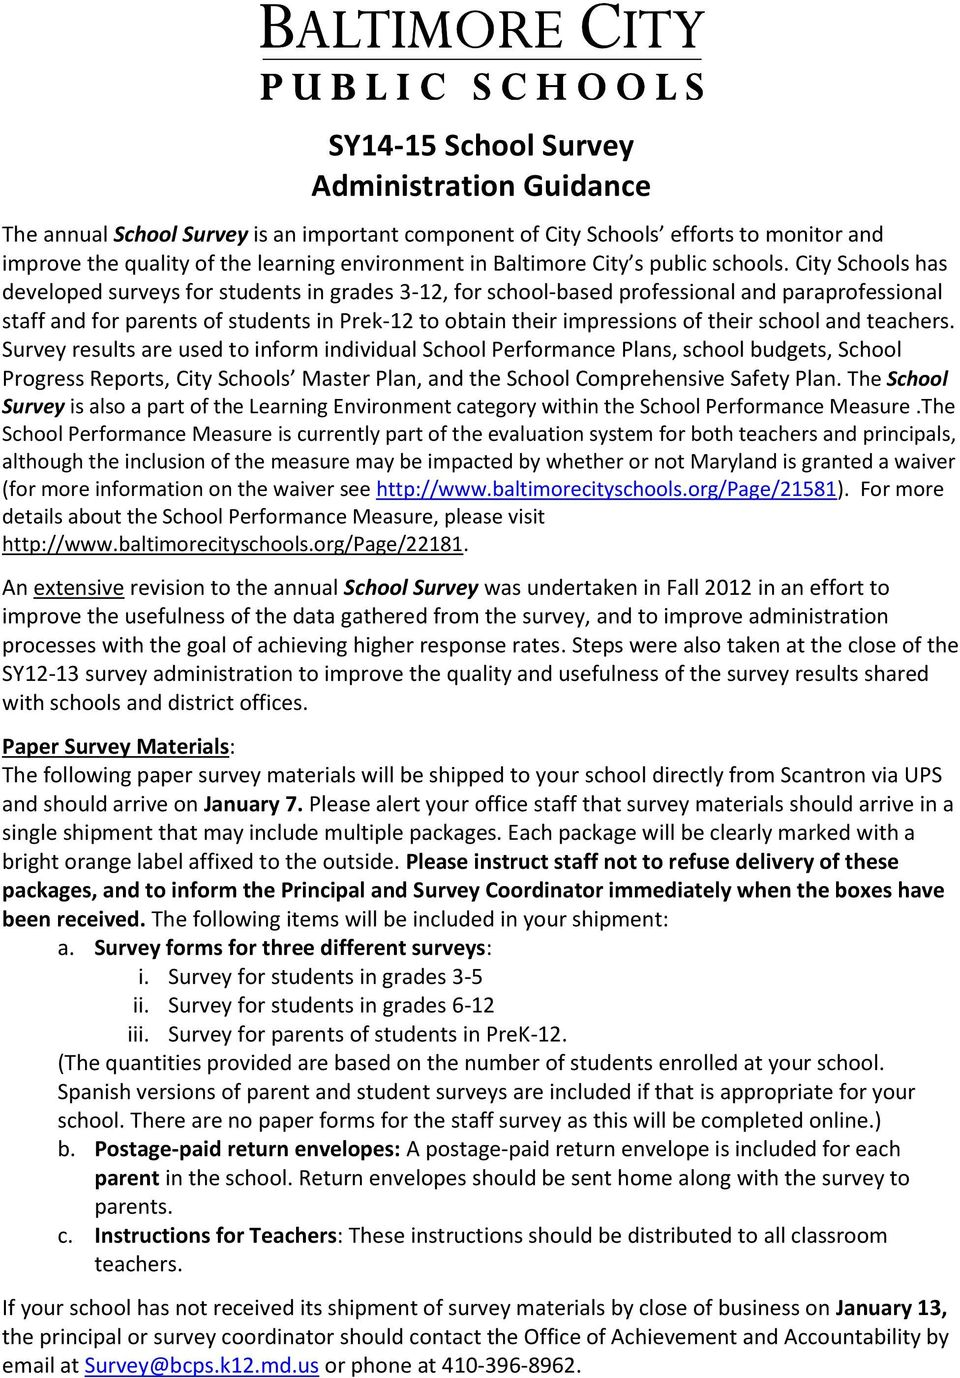 City Schools has developed surveys for students in grades 3-12, for school-based professional and paraprofessional staff and for parents of students in Prek-12 to obtain their impressions of their